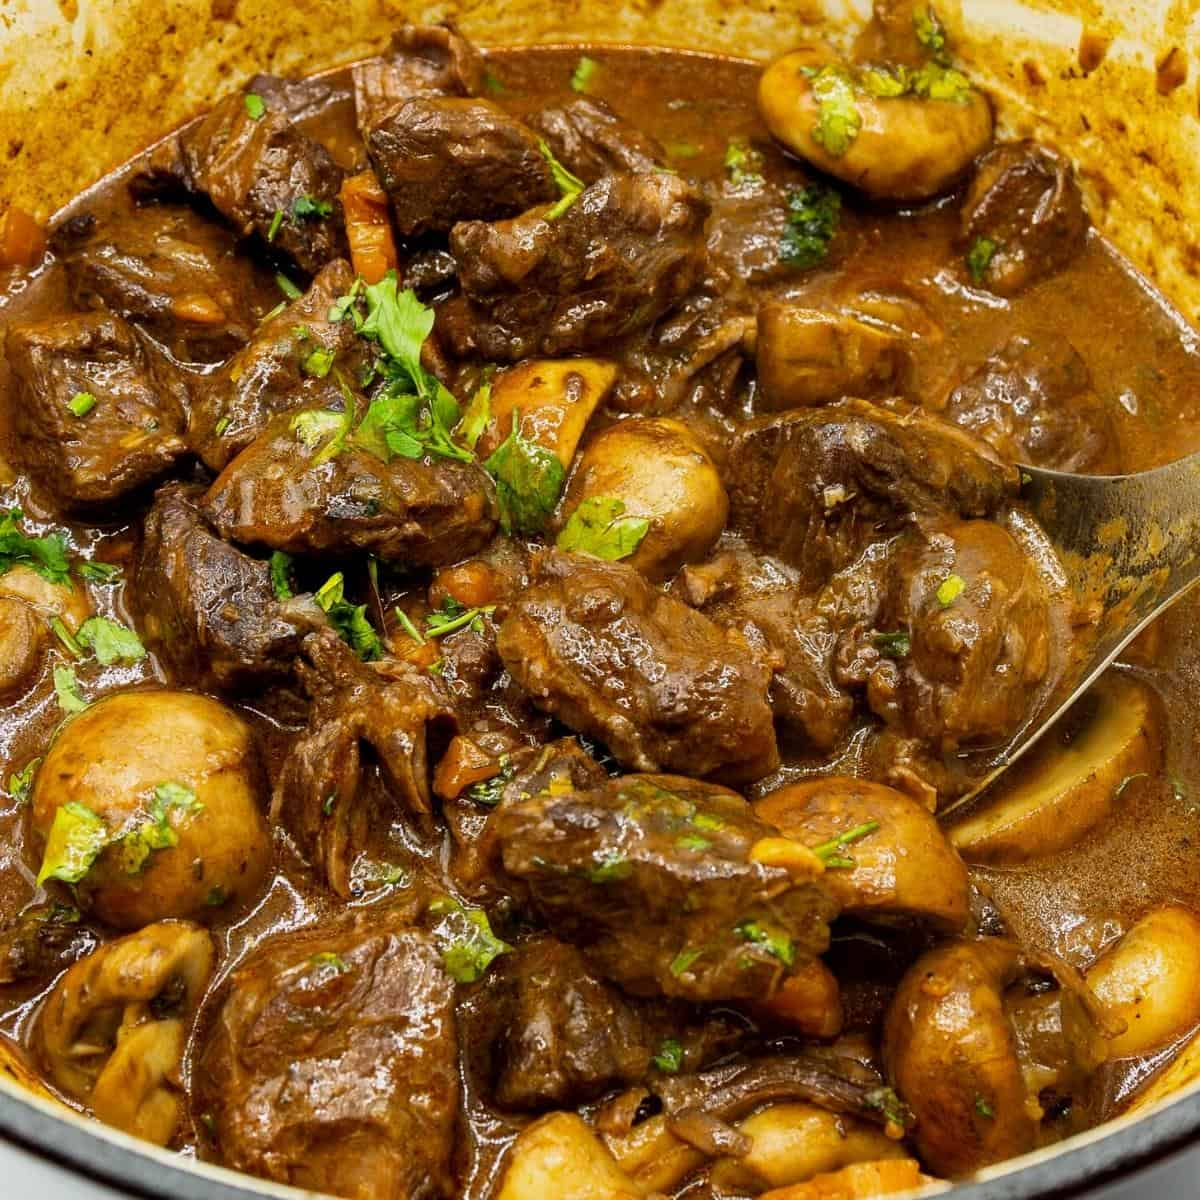 Beef burgundy in a Dutch oven.